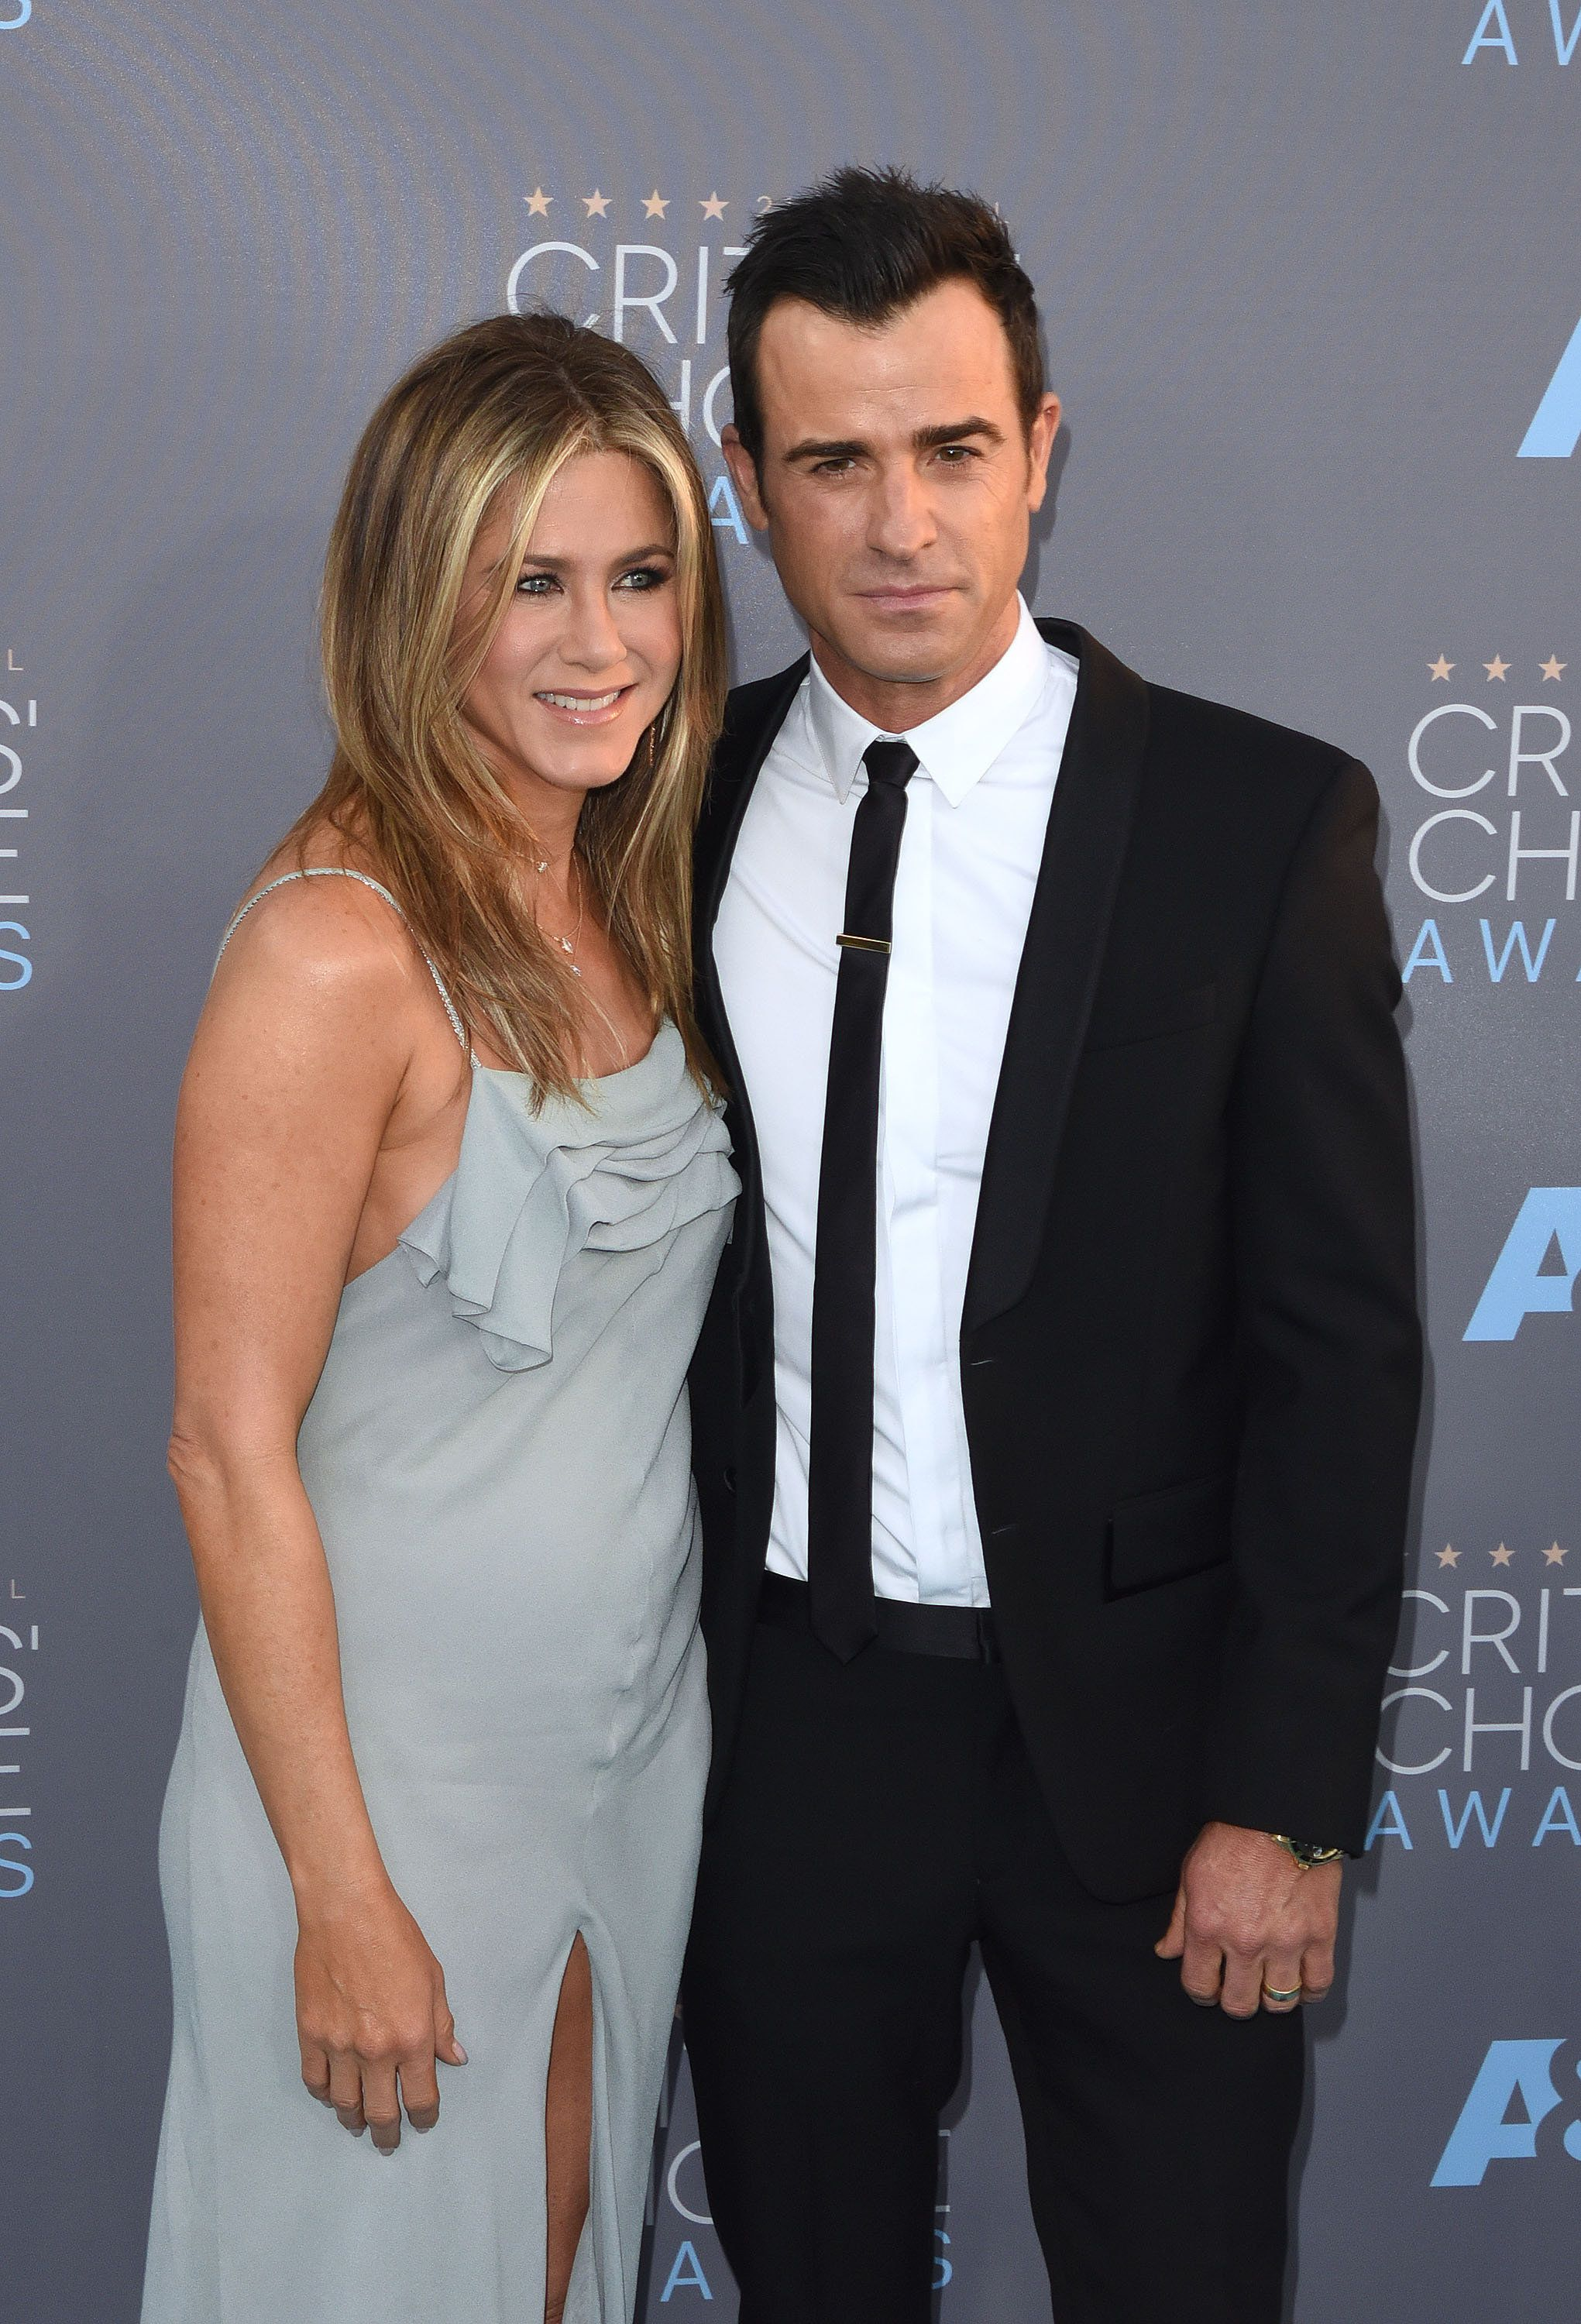 SANTA MONICA, CA - JANUARY 17:  Actress Jennifer Aniston (L) and actor Justin Theroux attend the 21st Annual Critics' Choice Awards at Barker Hangar on January 17, 2016 in Santa Monica, California.  (Photo by C Flanigan/Getty Images)